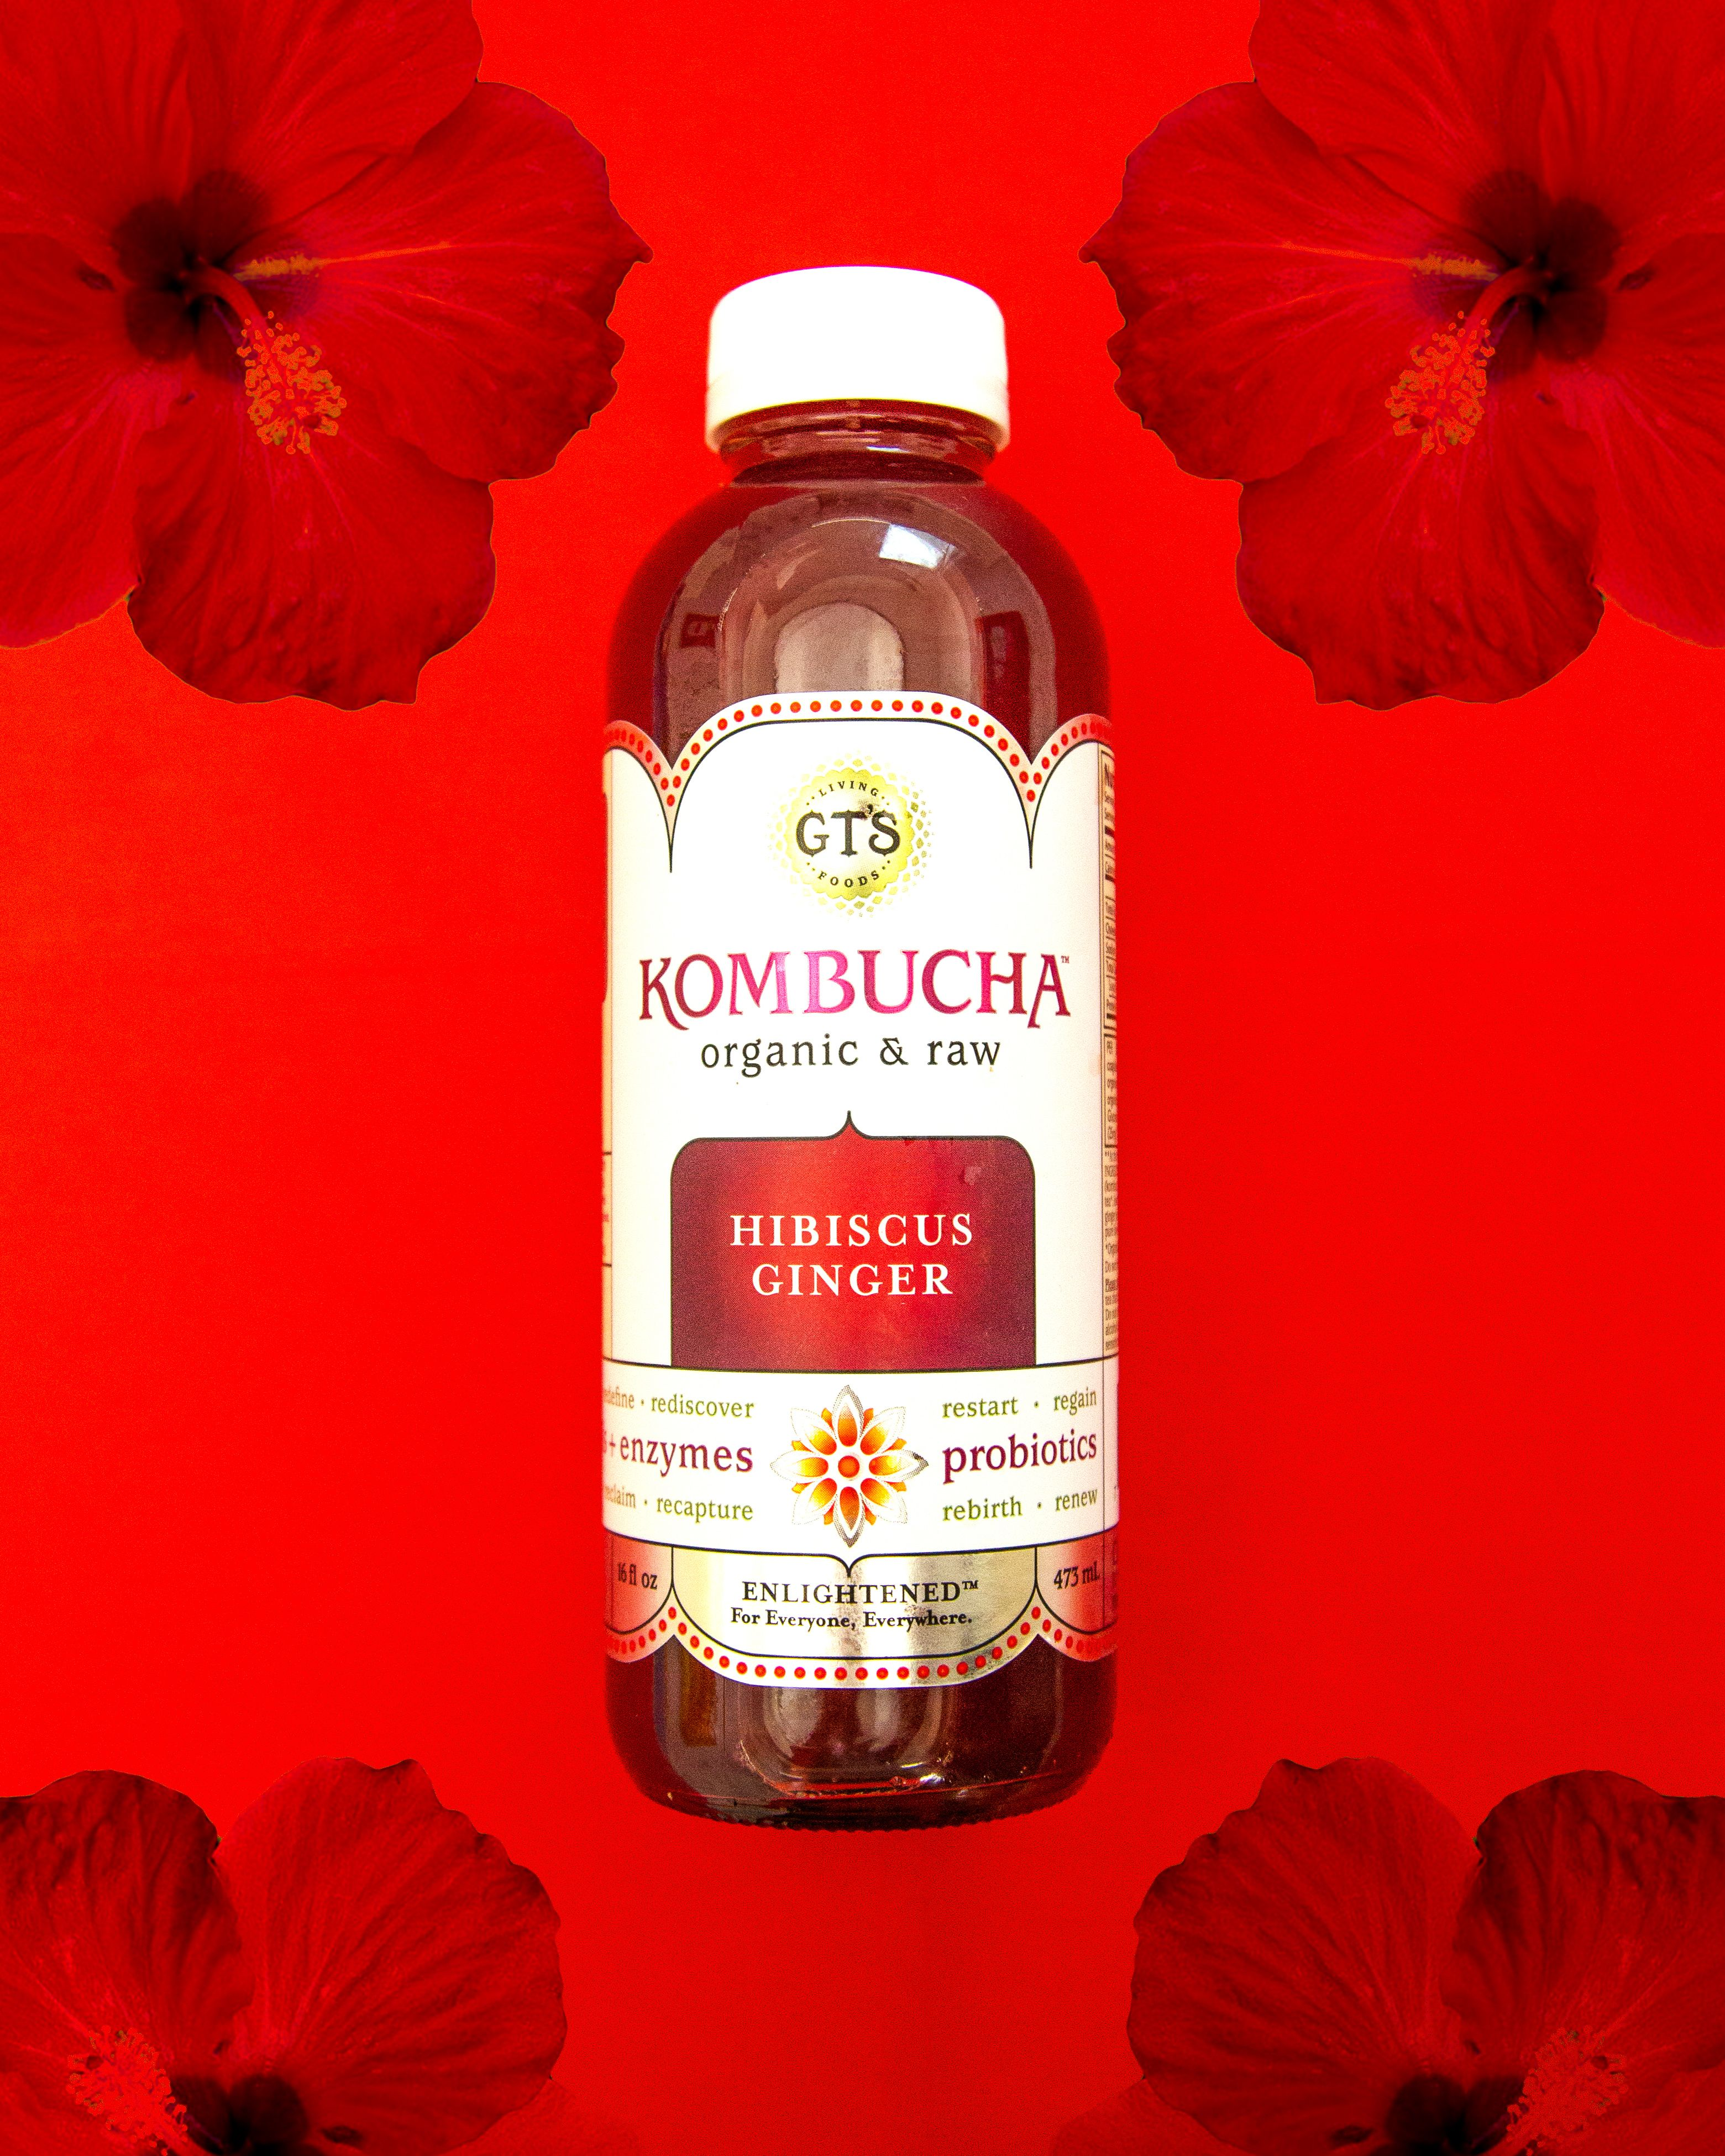 We Re Proud Of What S Inside Our Bottles Gt S Kombucha Hibiscus Ginger Pairs Our Signature Small Batch Kombucha With Antioxi Kombucha Vegetarian Dim Sum Food